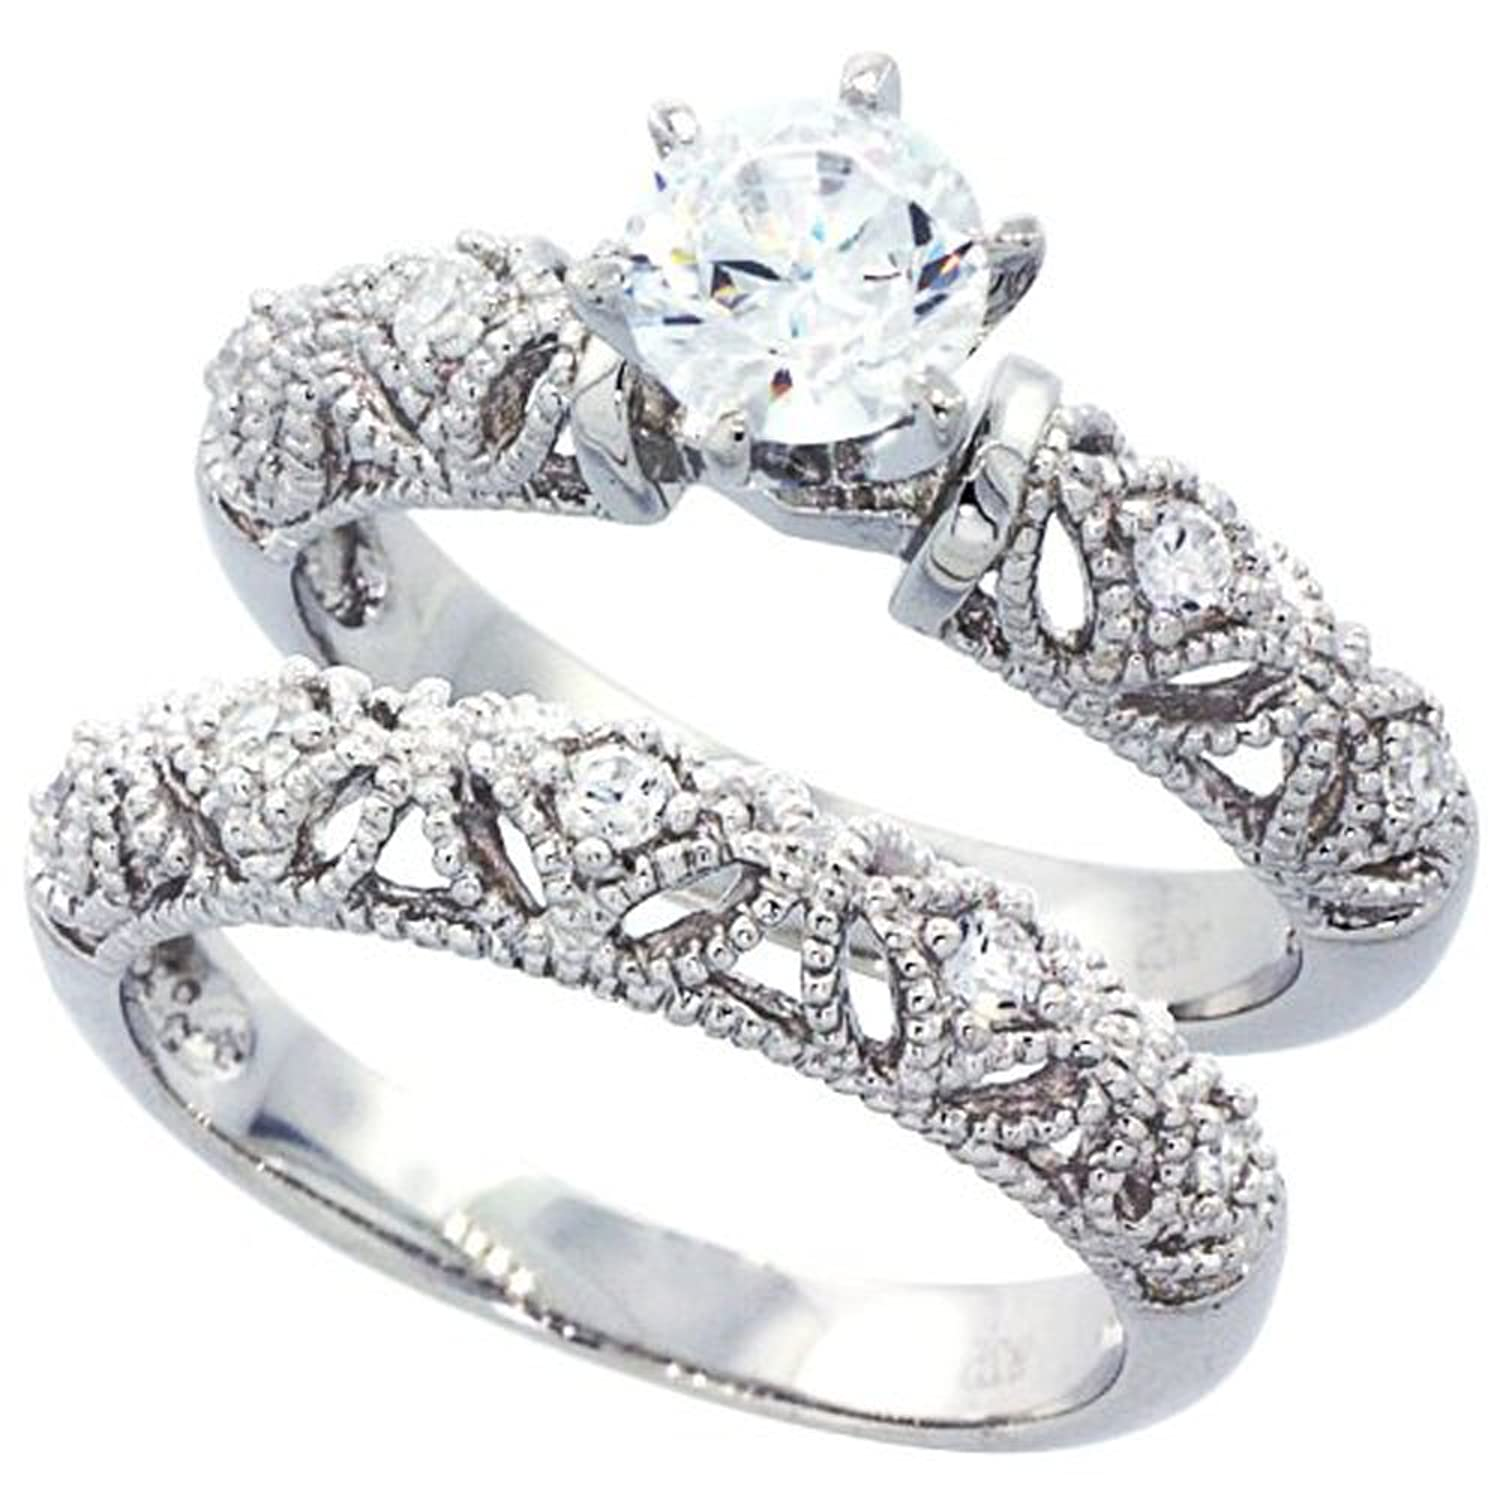 amazoncom sterling silver wedding ring set round cz engagement ring 2pcs vintage bridal sets size 5 to 10 jewelry - Silver Wedding Rings